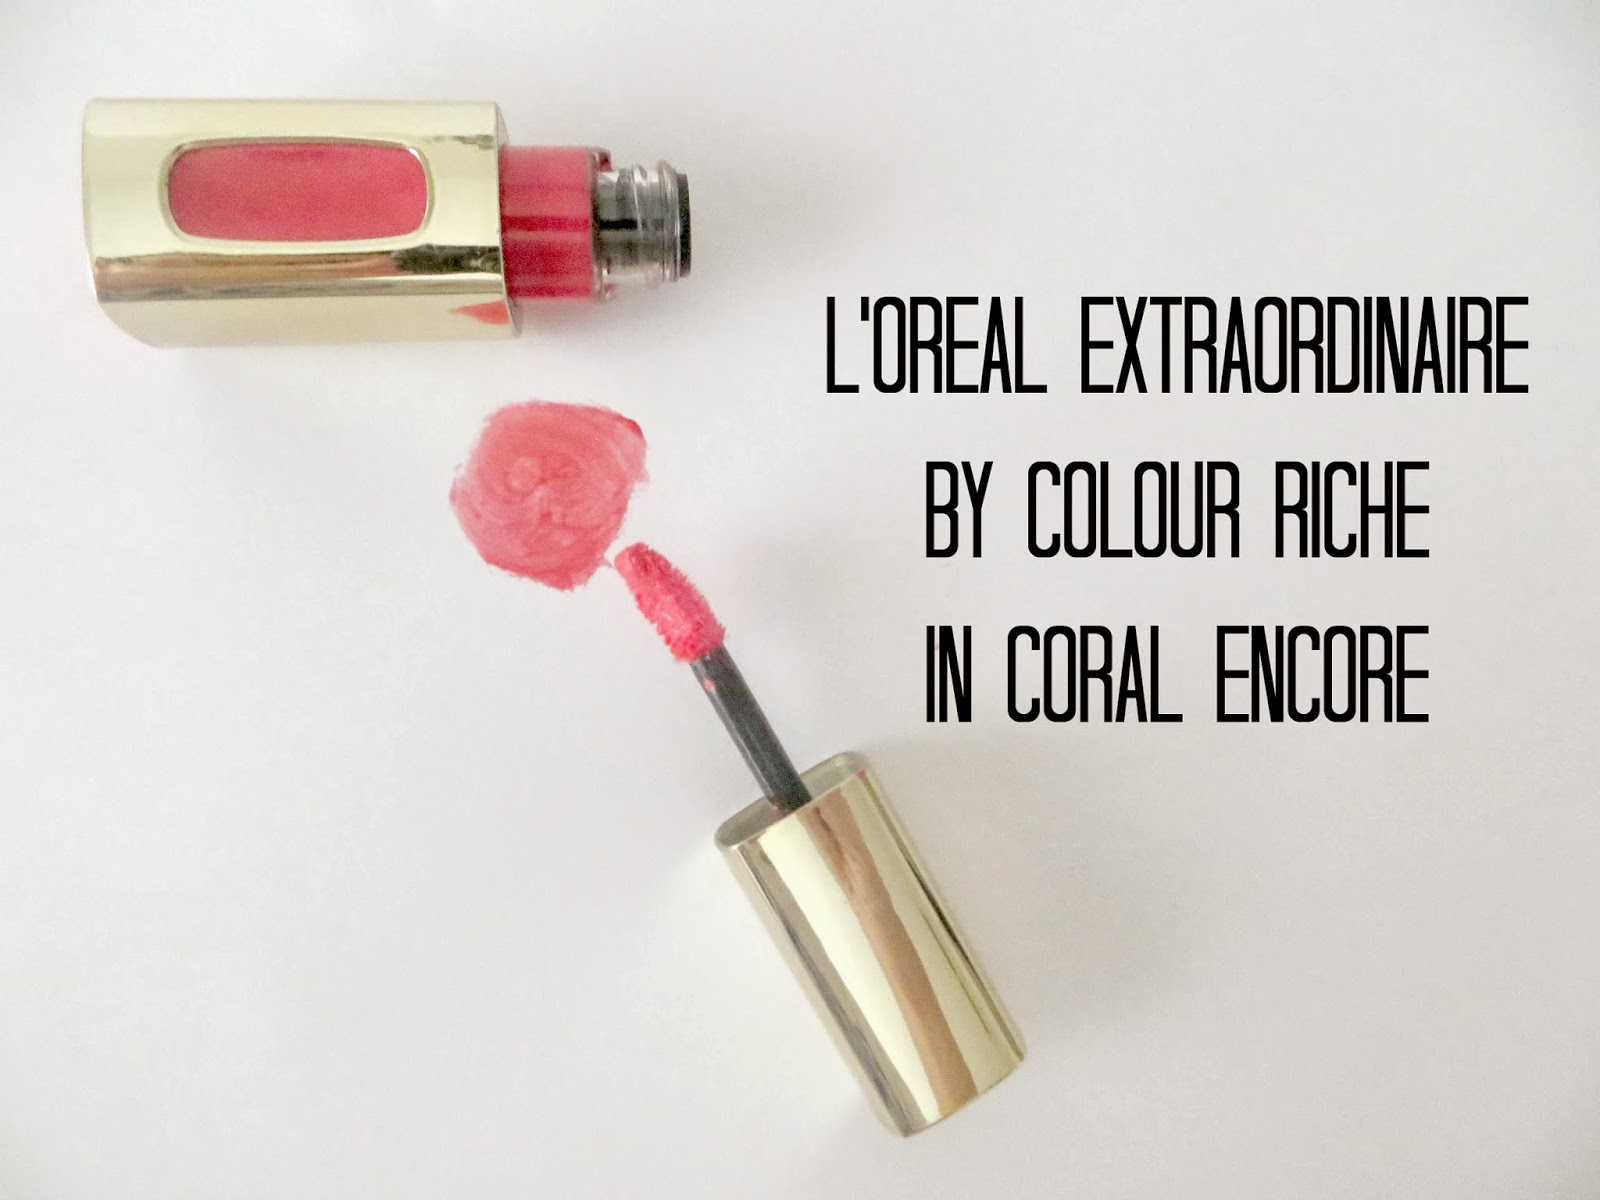 Loreal colour caresse wet shine stain - L Oreal Extraordinaire By Colour Riche In Coral Encore